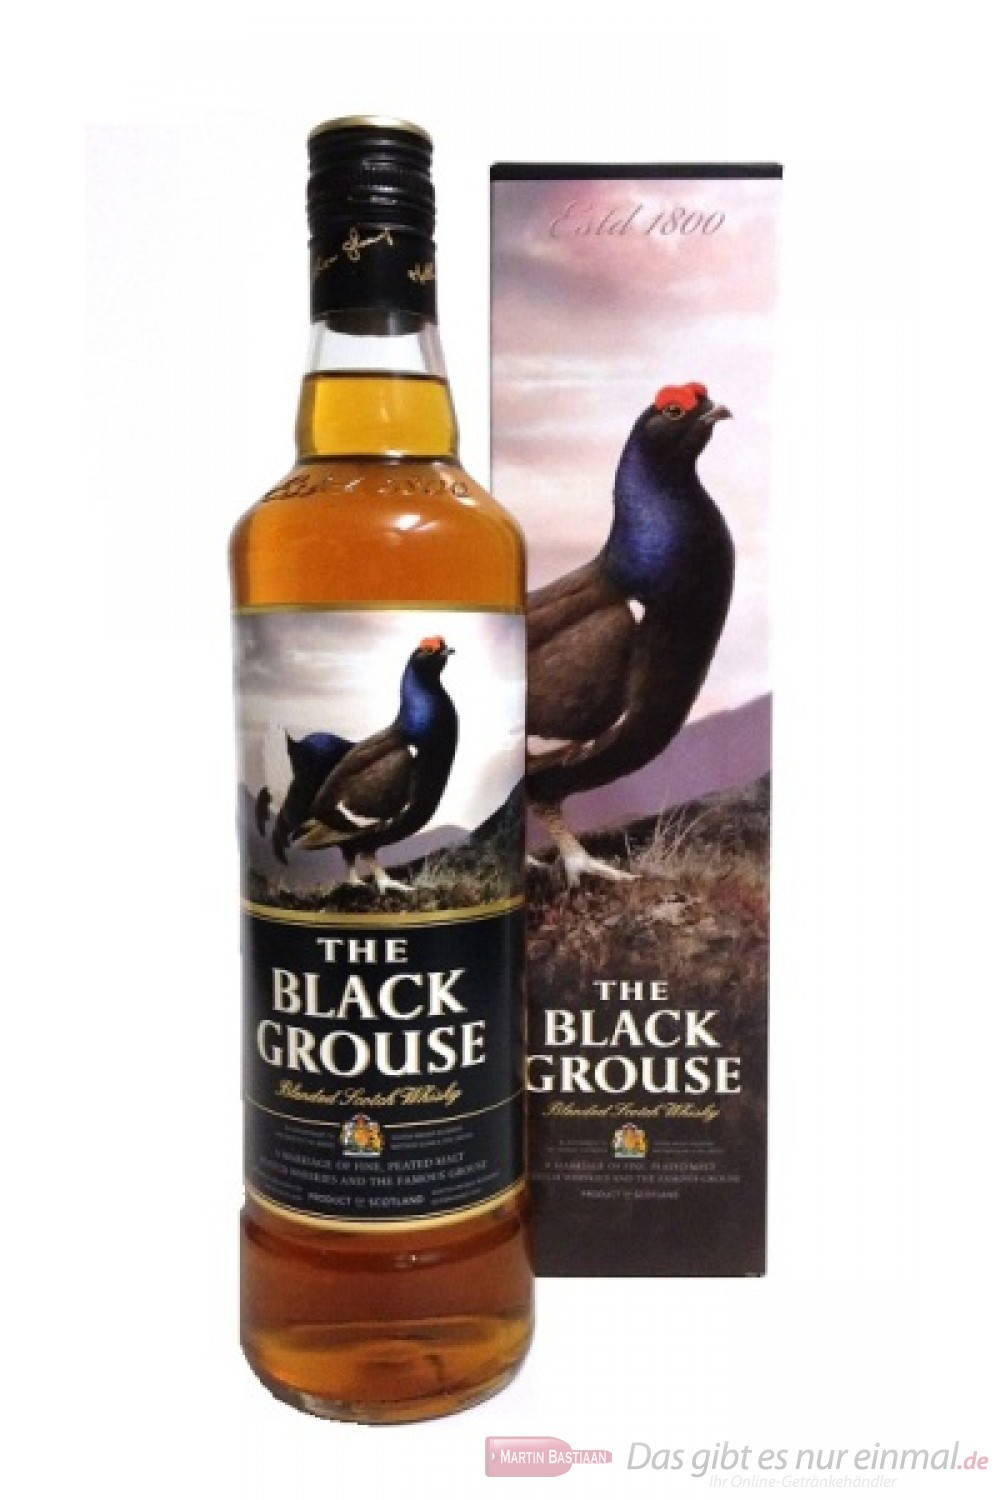 The Black Grouse Blended